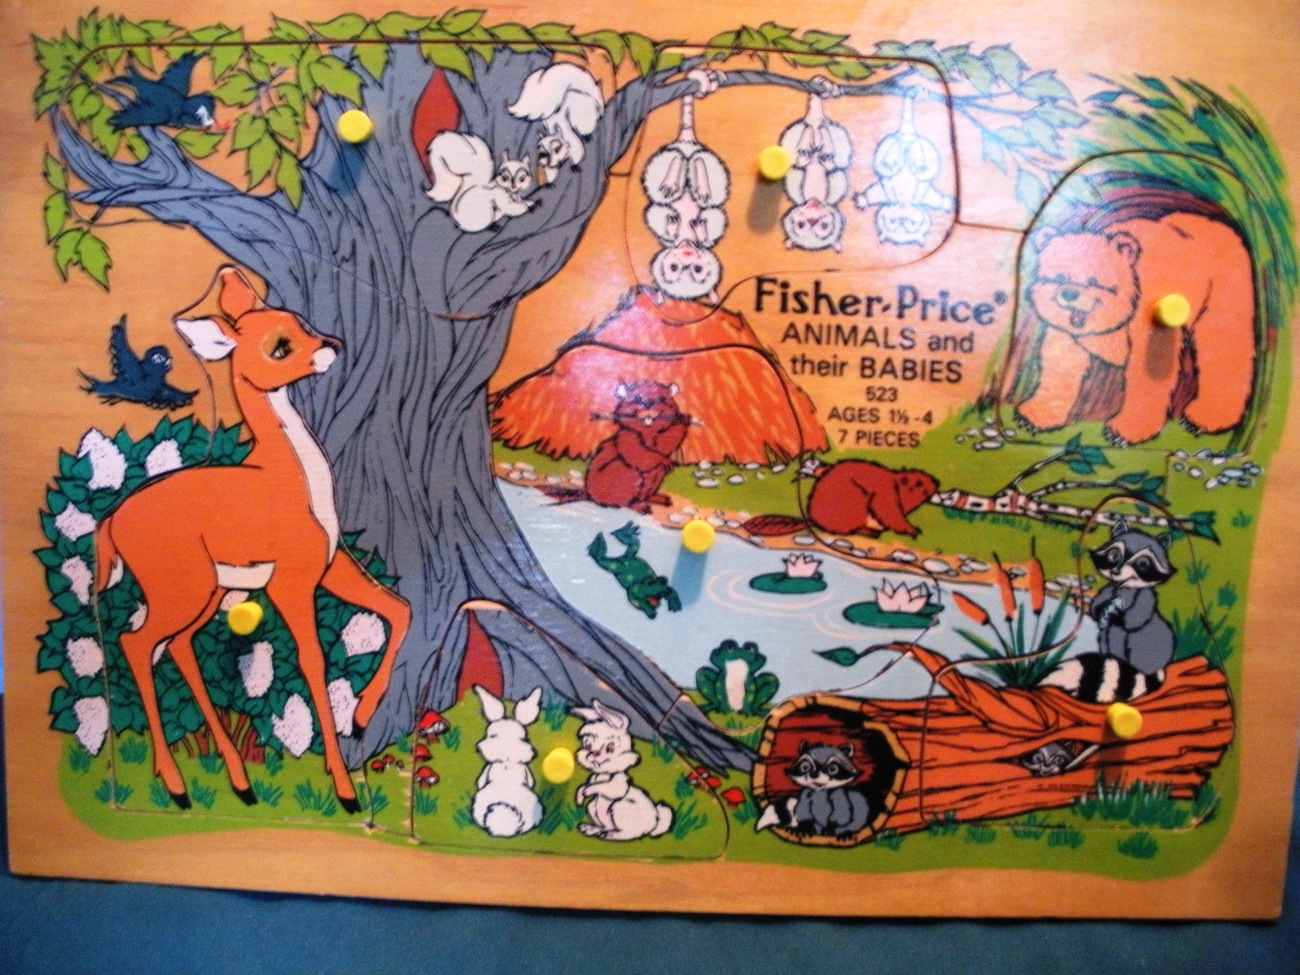 Vintage Fisher Price Pick-Up and Peek #523 Animals and their Babies VG+-VG++!